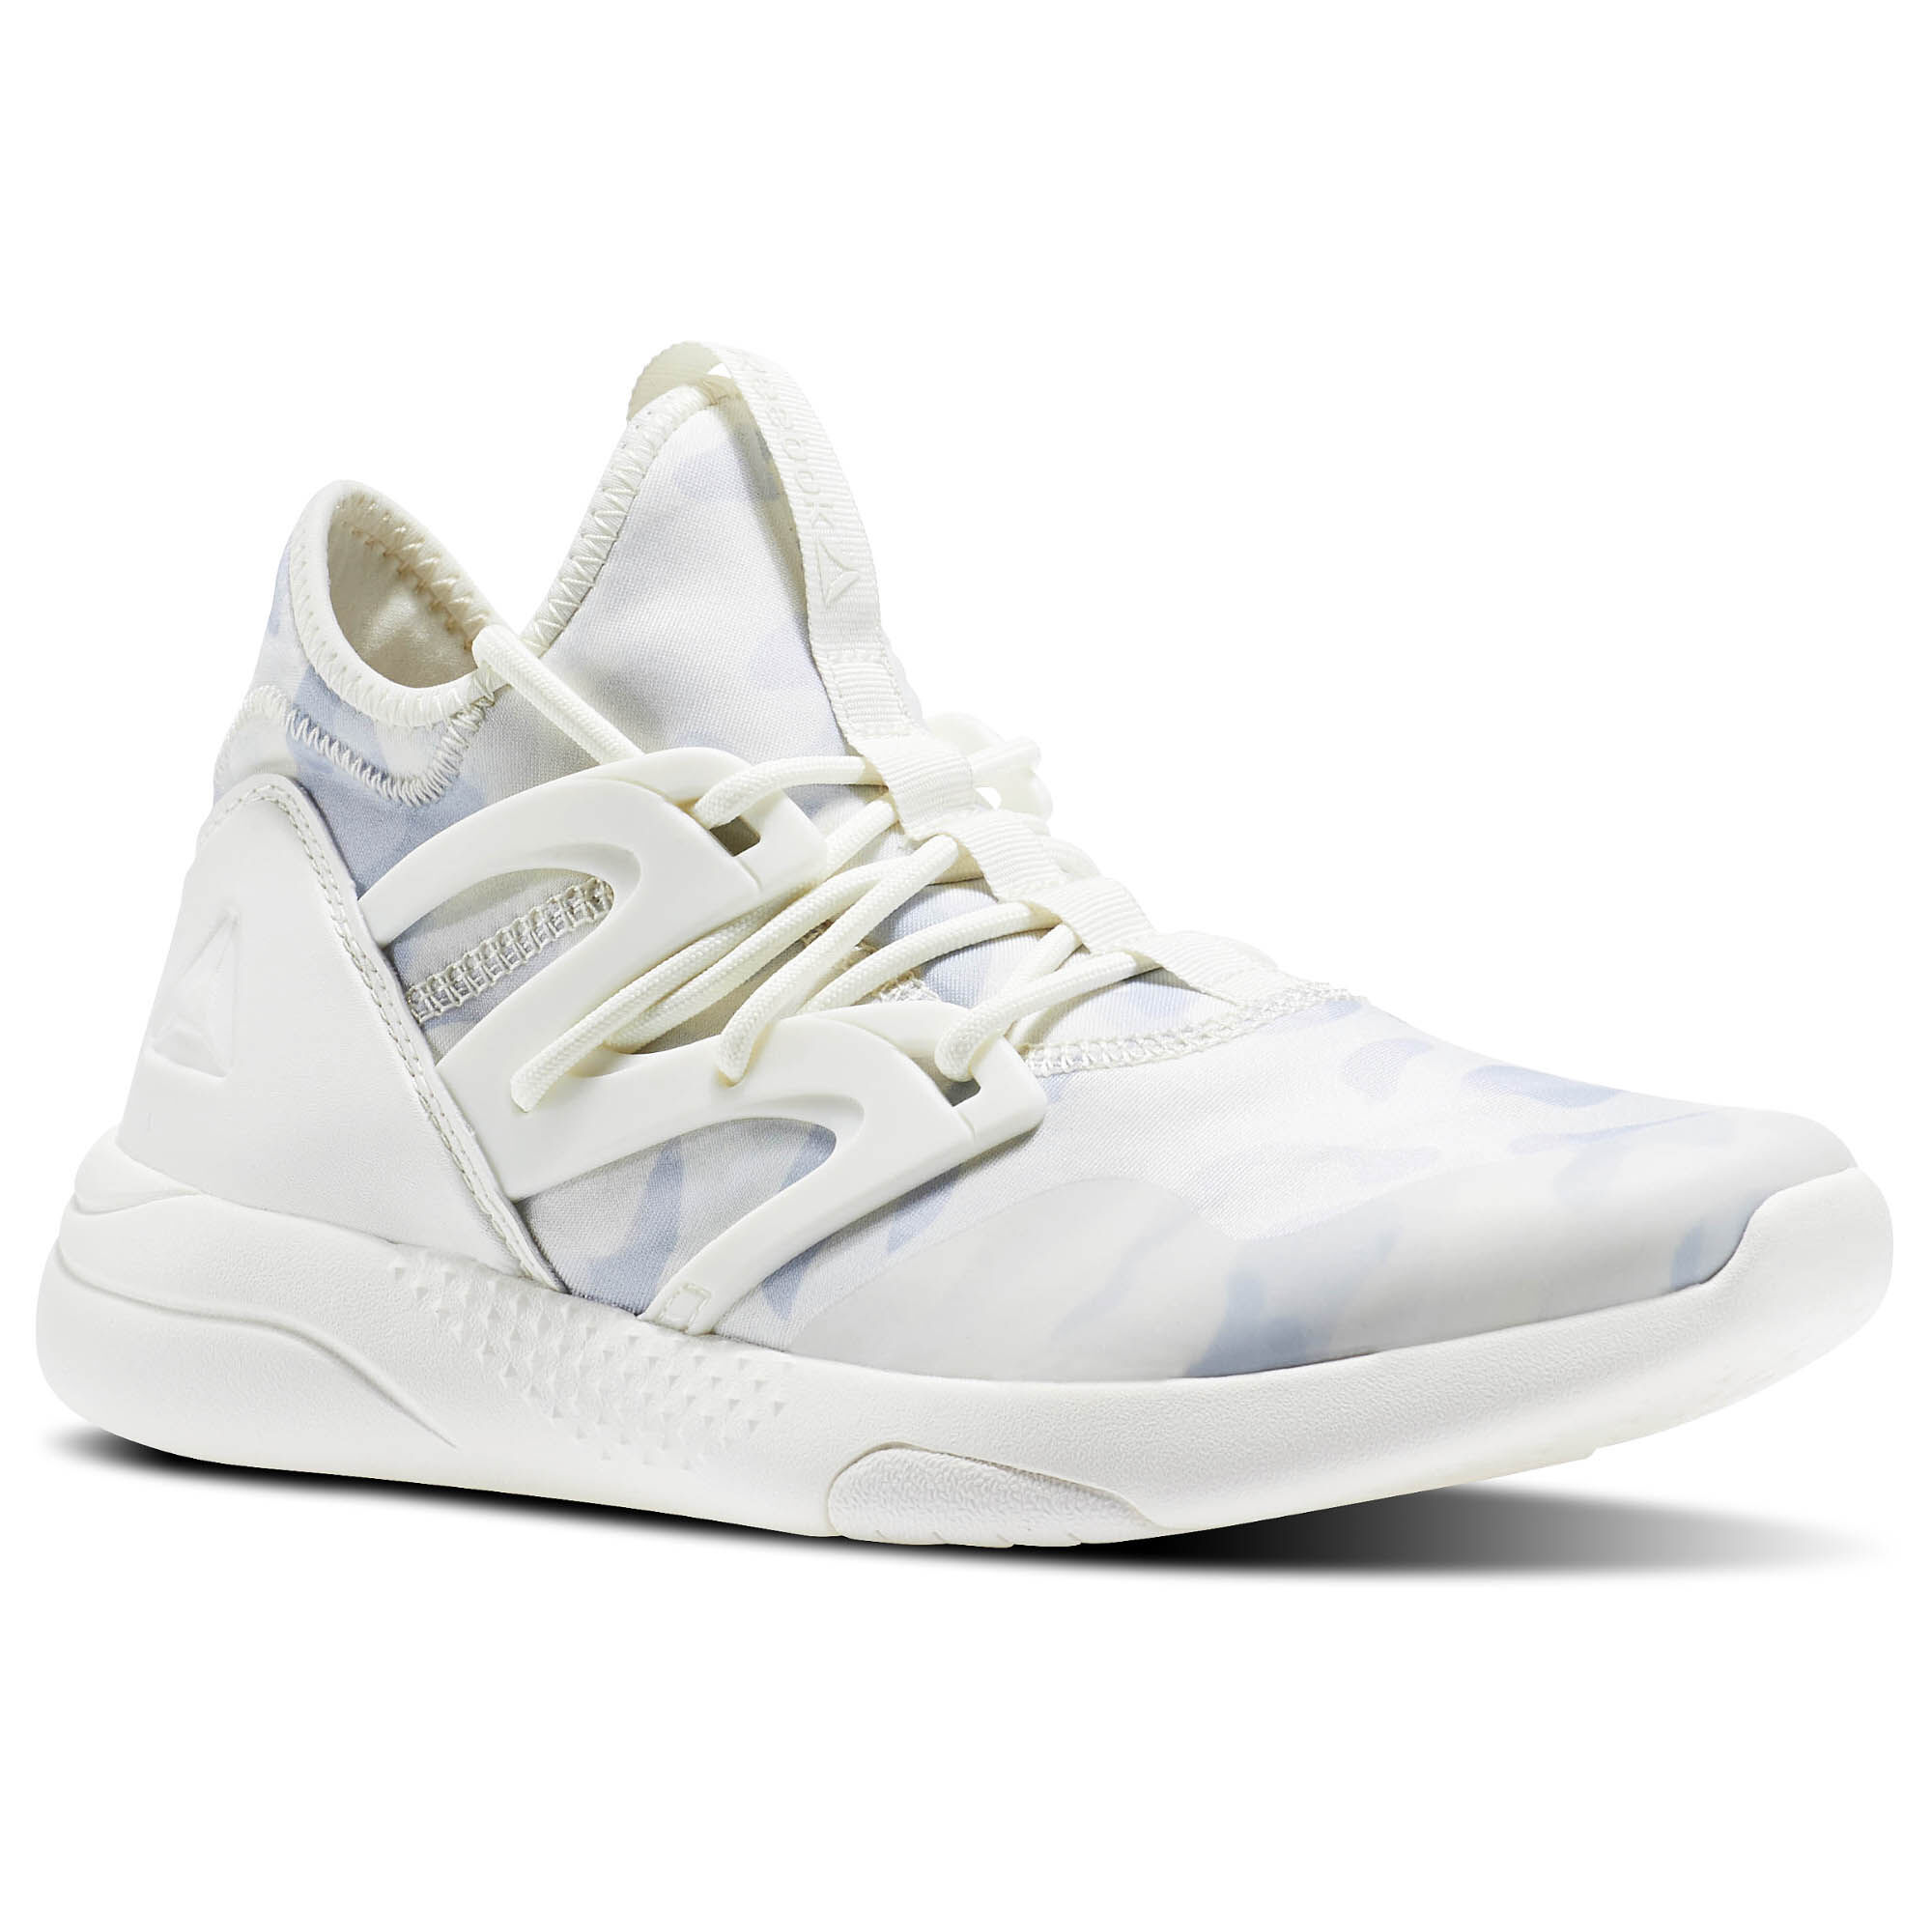 Reebok - Hayasu LTD Chalk White/Cloud Grey BS6024